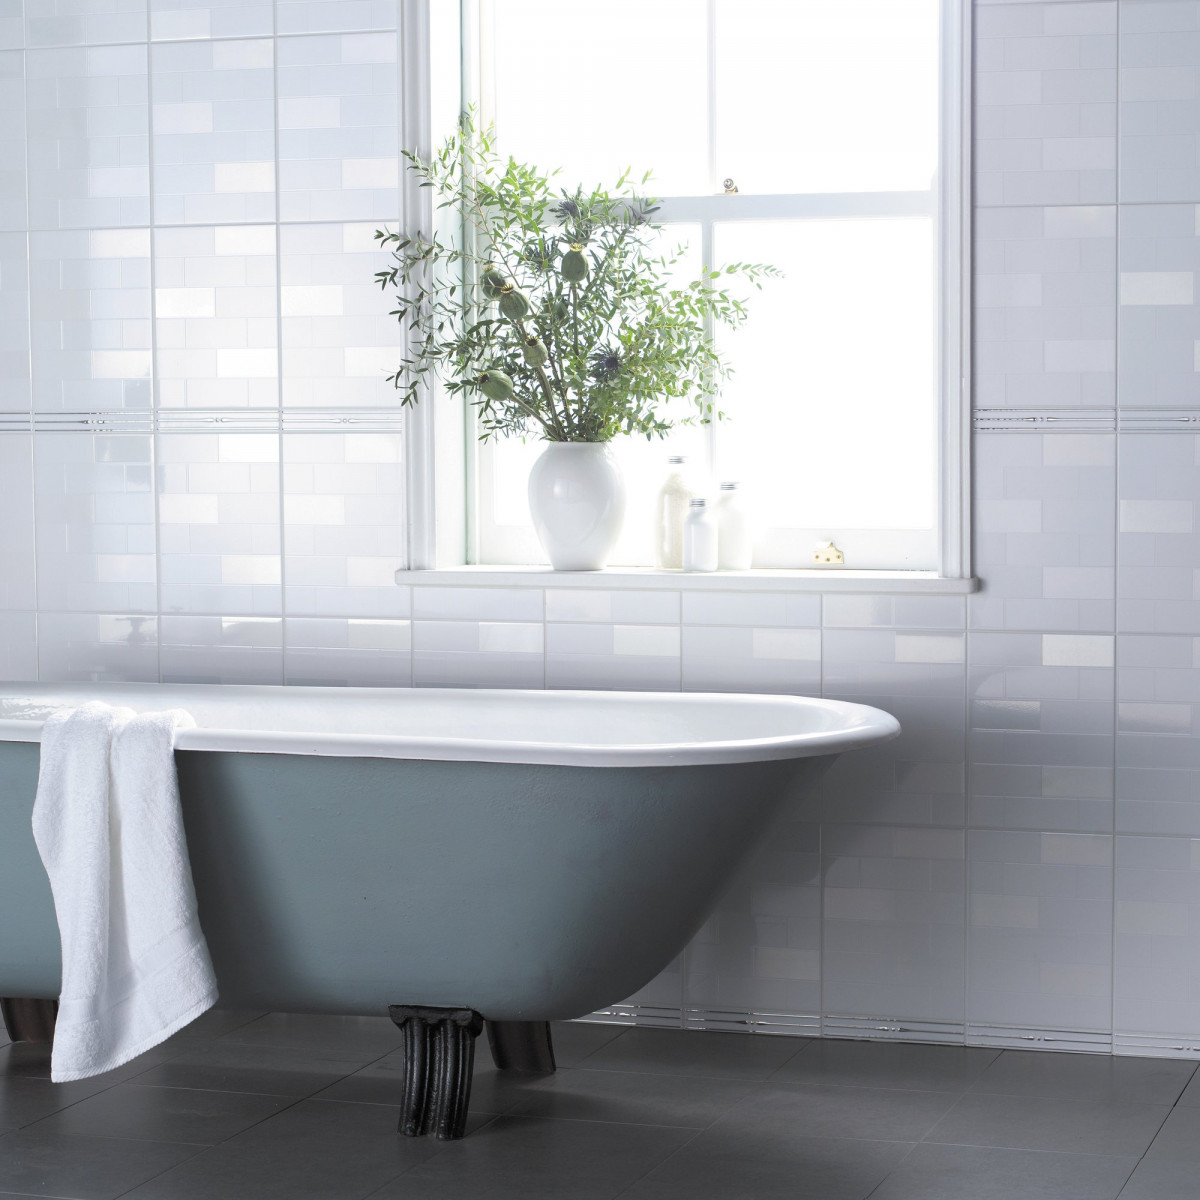 Border Tiles. Get Ideas for Bathrooms & Kitchens | British Ceramic Tile